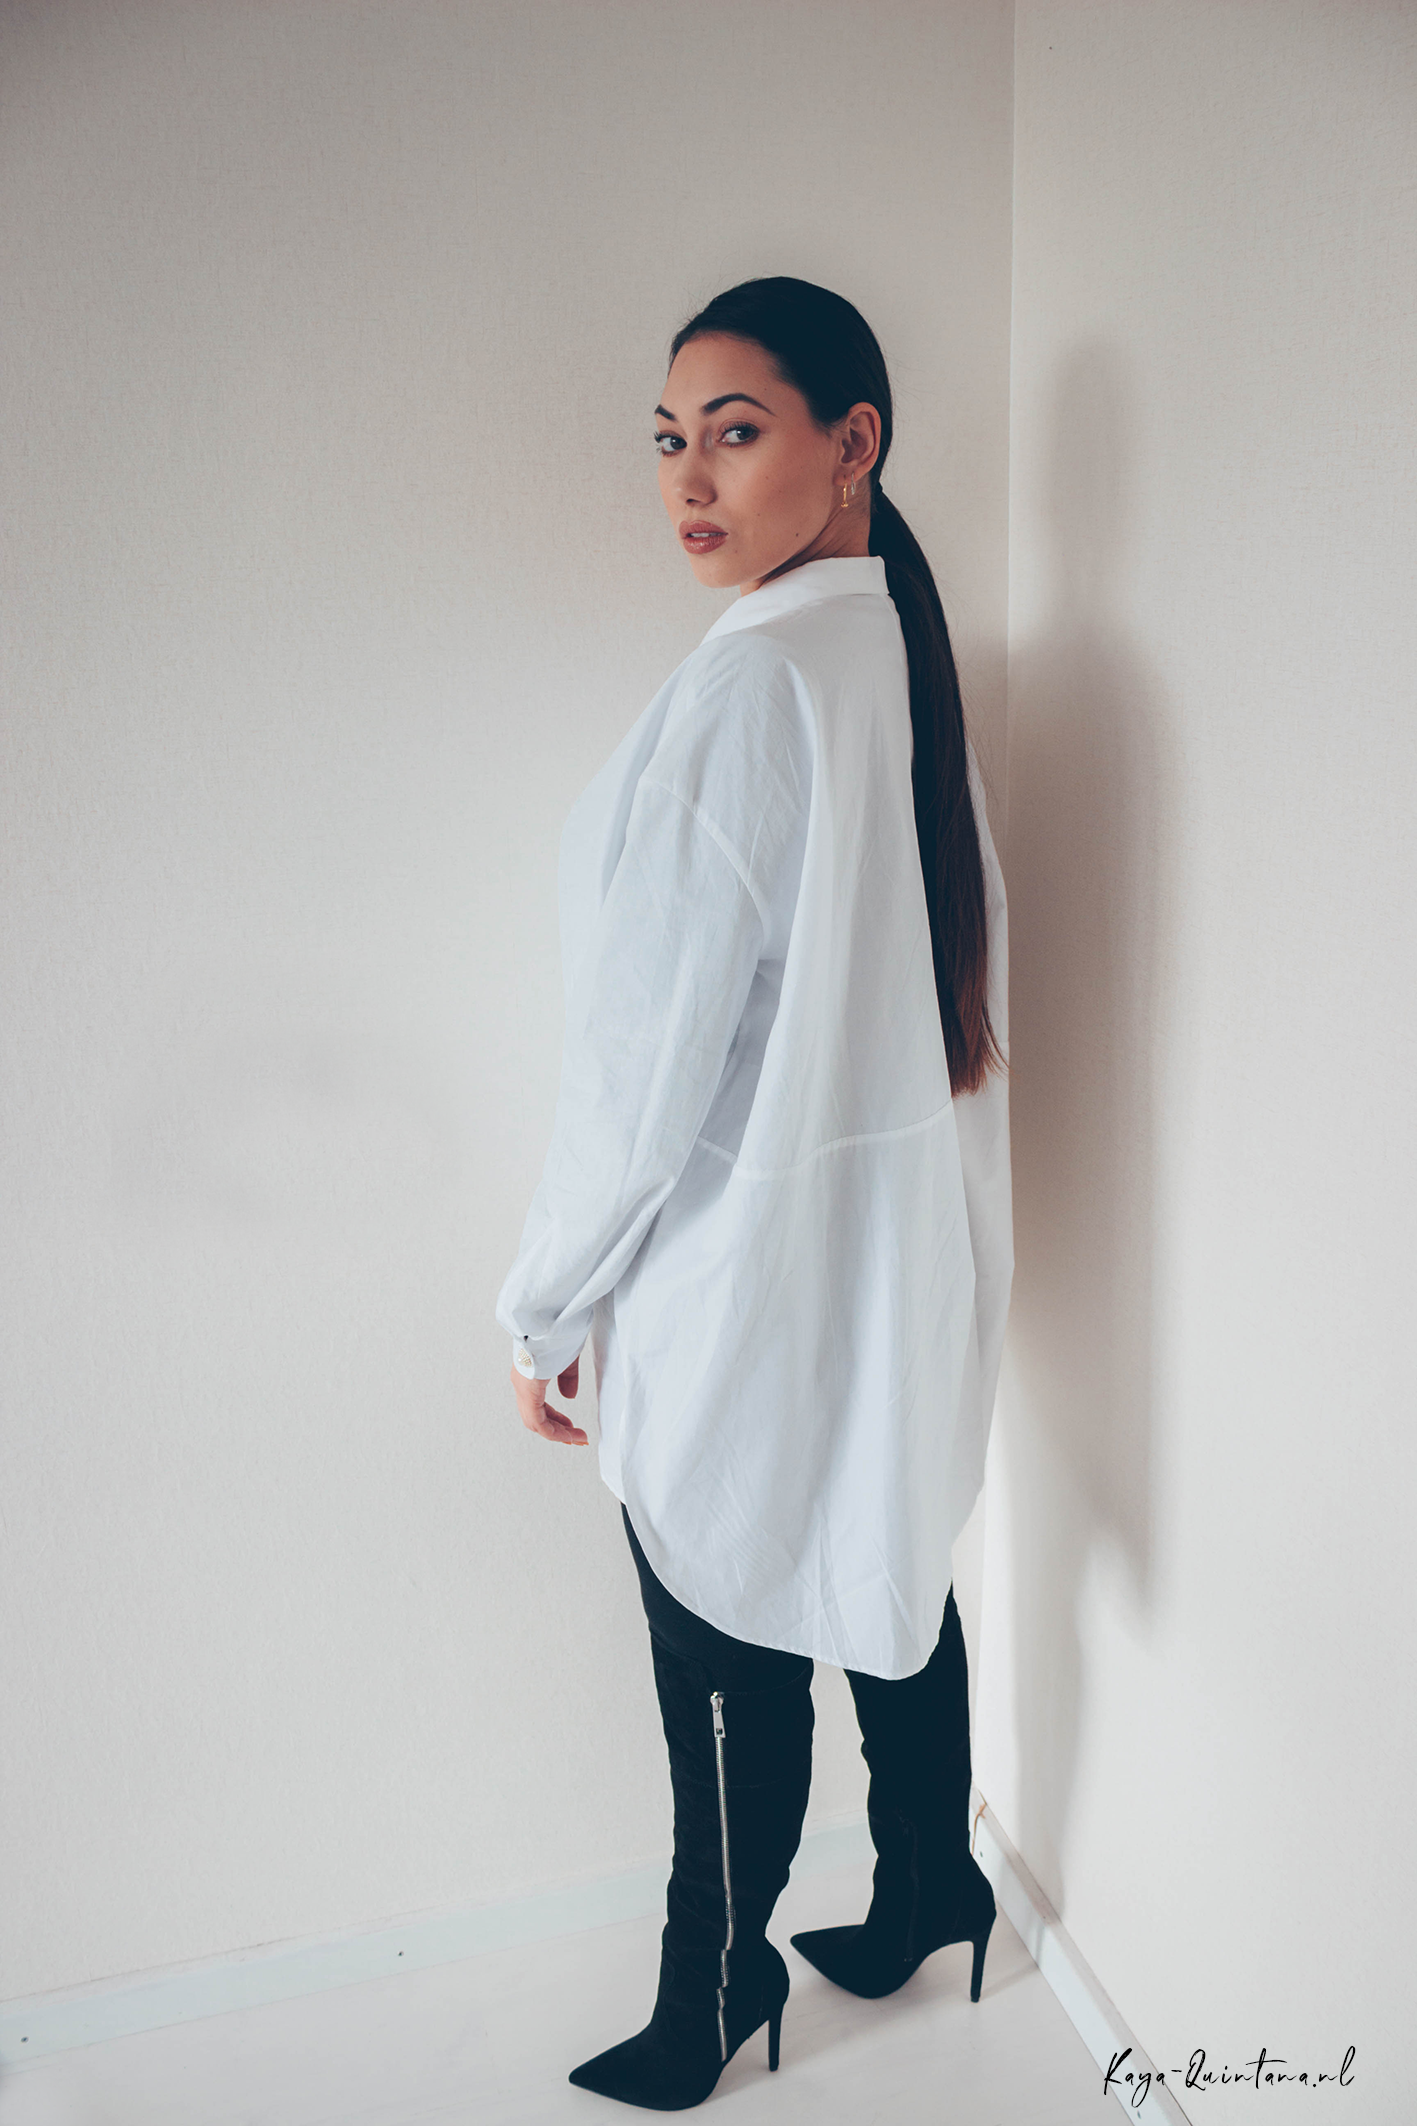 Minimalistic outfit white blouse